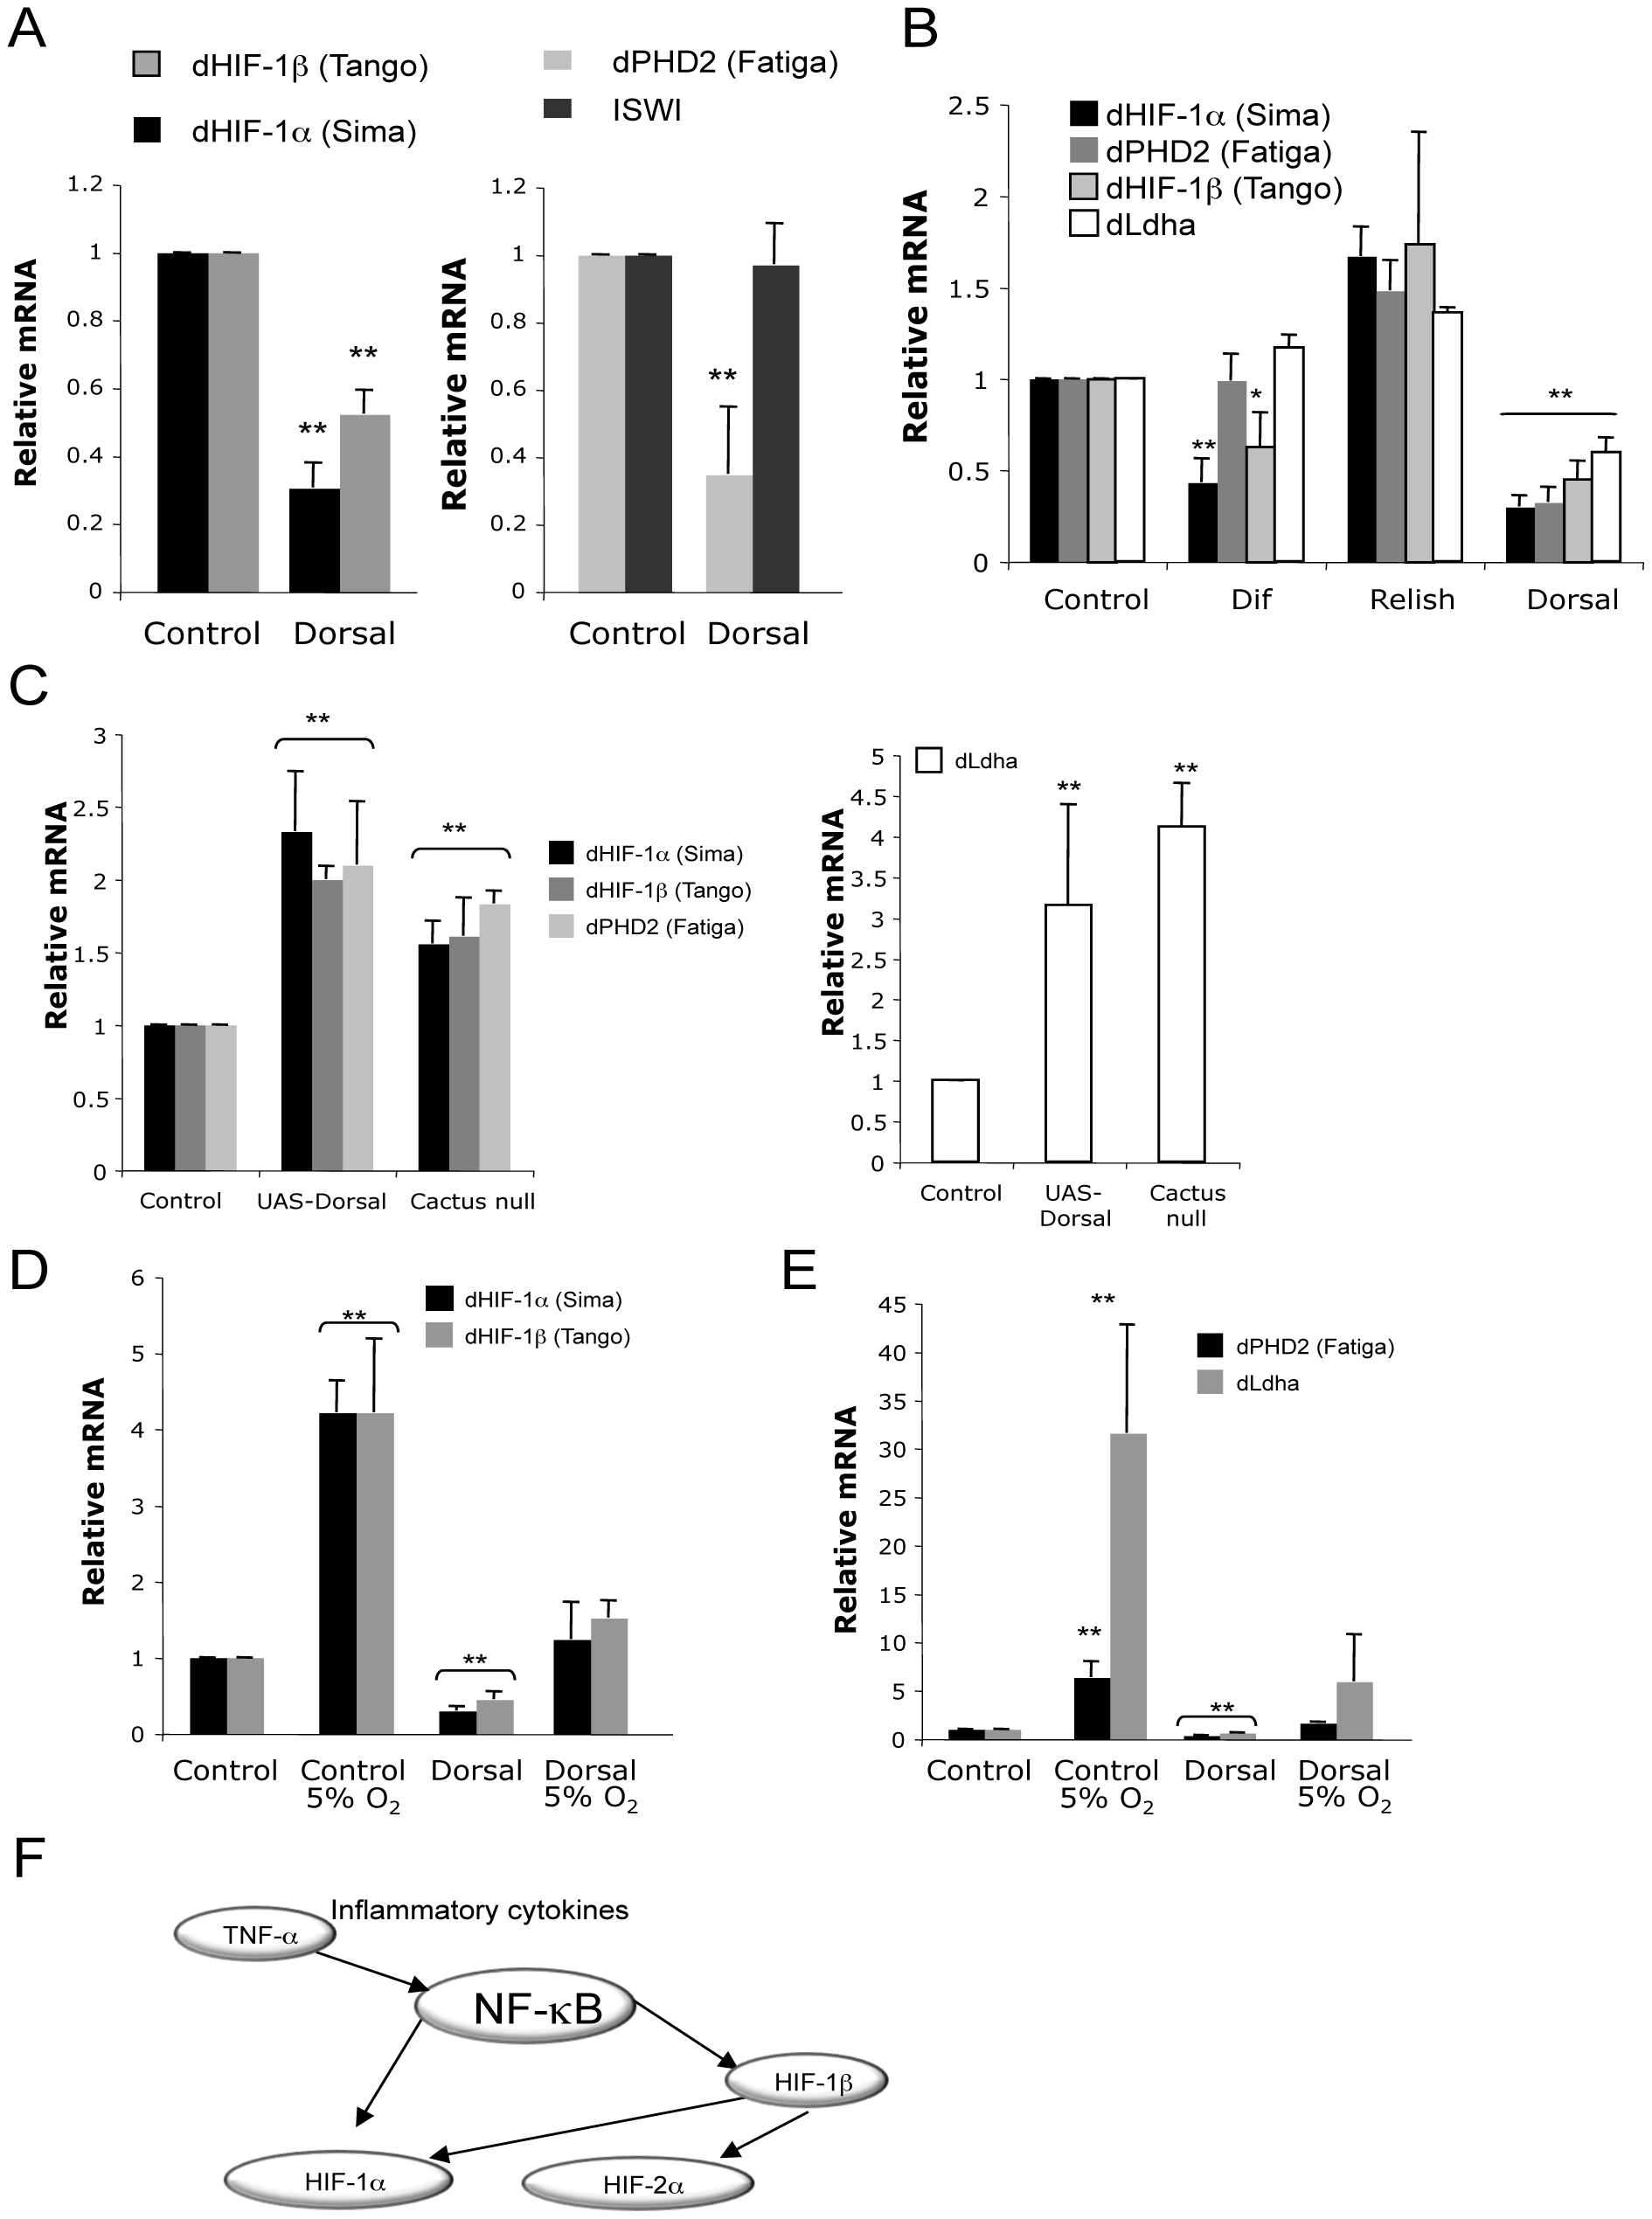 NF-κB–mediated control of the HIF system is conserved in <i>Drosophila</i>.